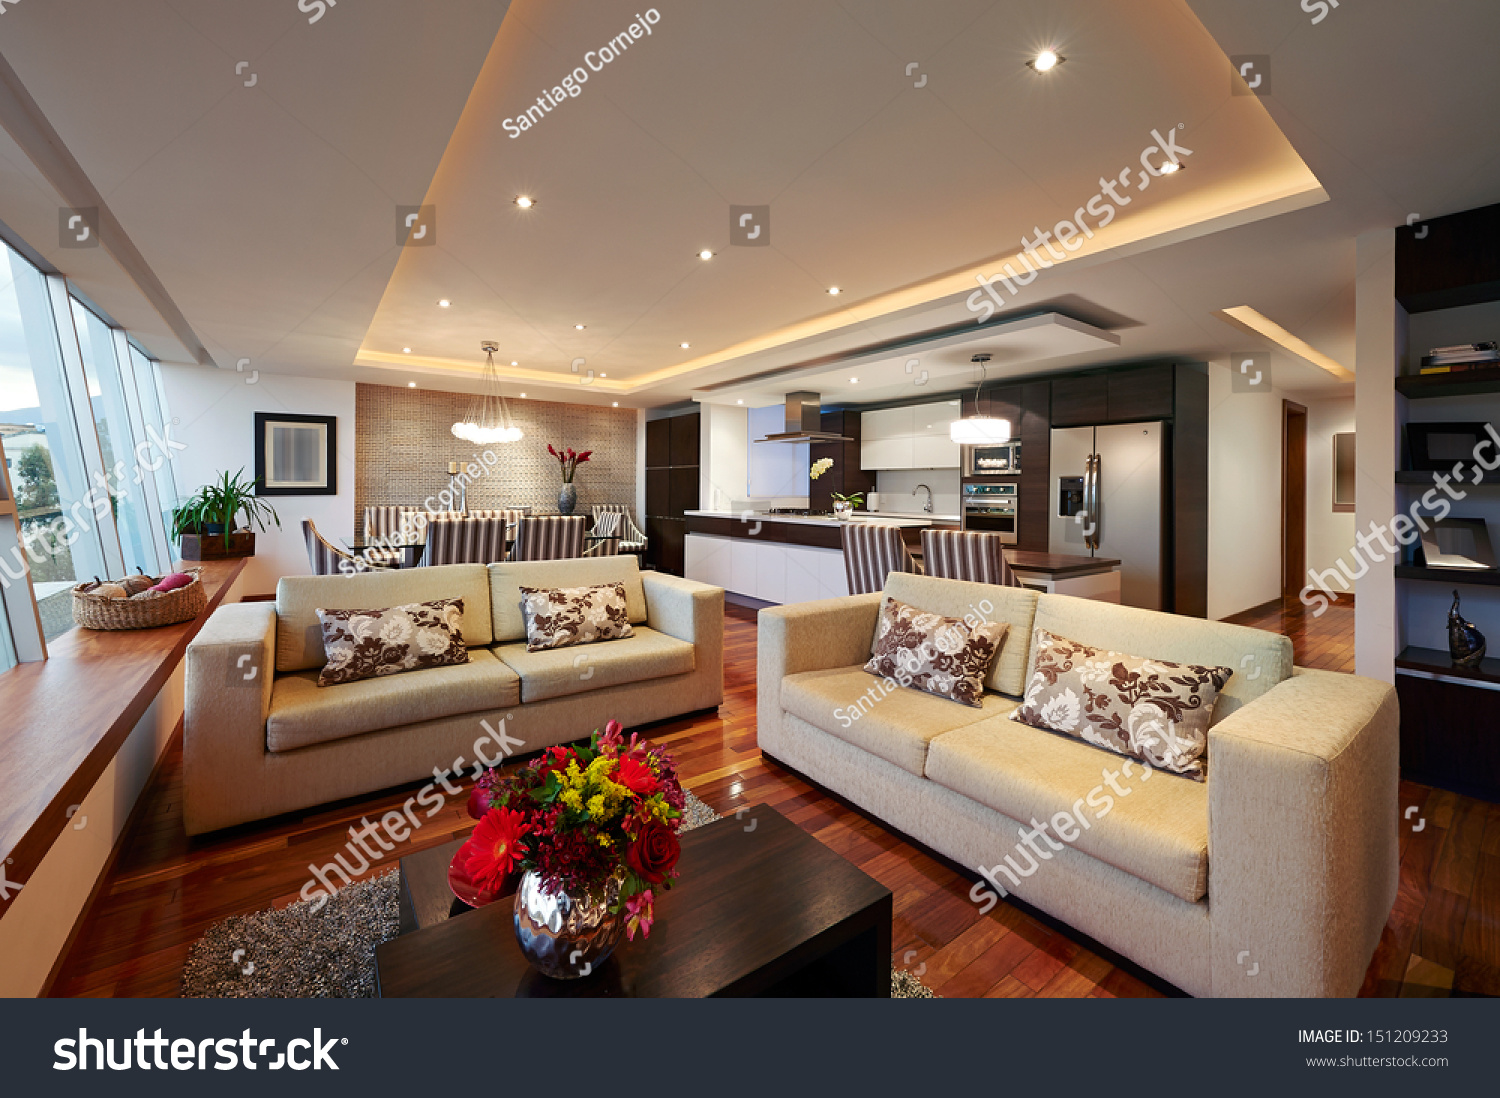 Interior Design Large Living Room Interior Design Big Modern Living Room Stock Photo 151209233